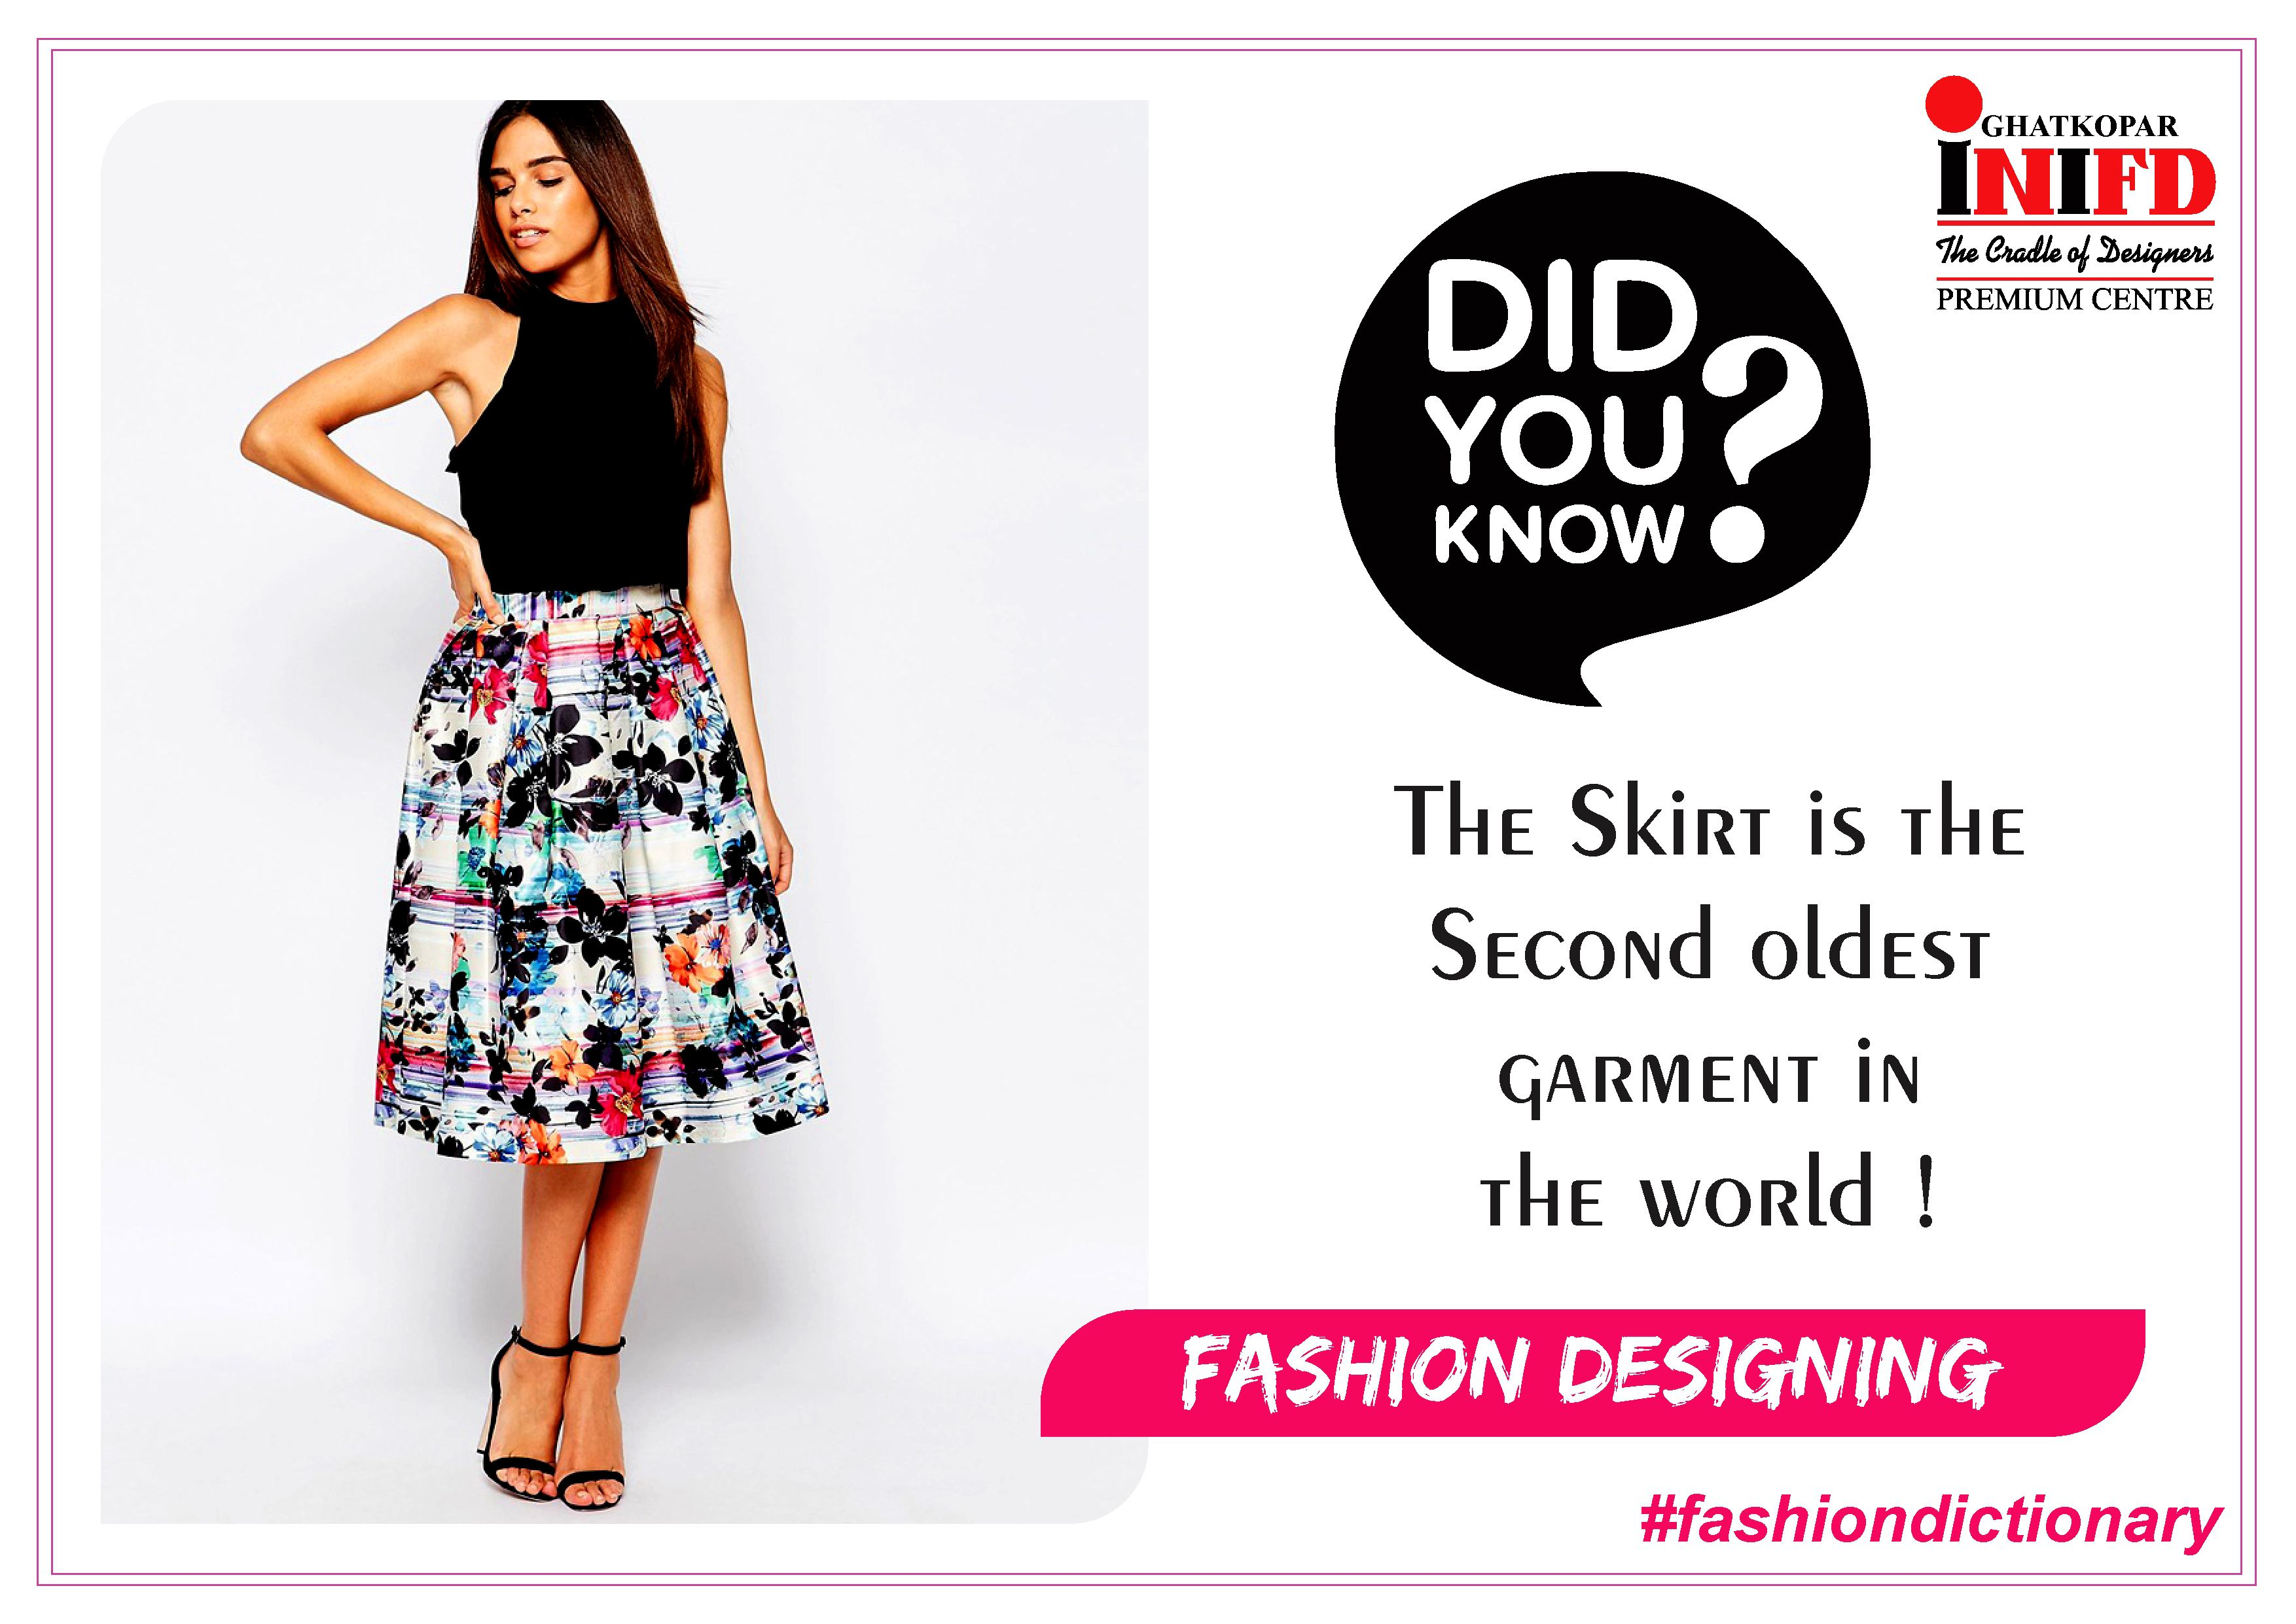 Fashiondictionary Did You Know The Skirt Is The Second Oldest Garment In The World Do You Want To Learn Such Fashion Design Fashion Dictionary Fashion